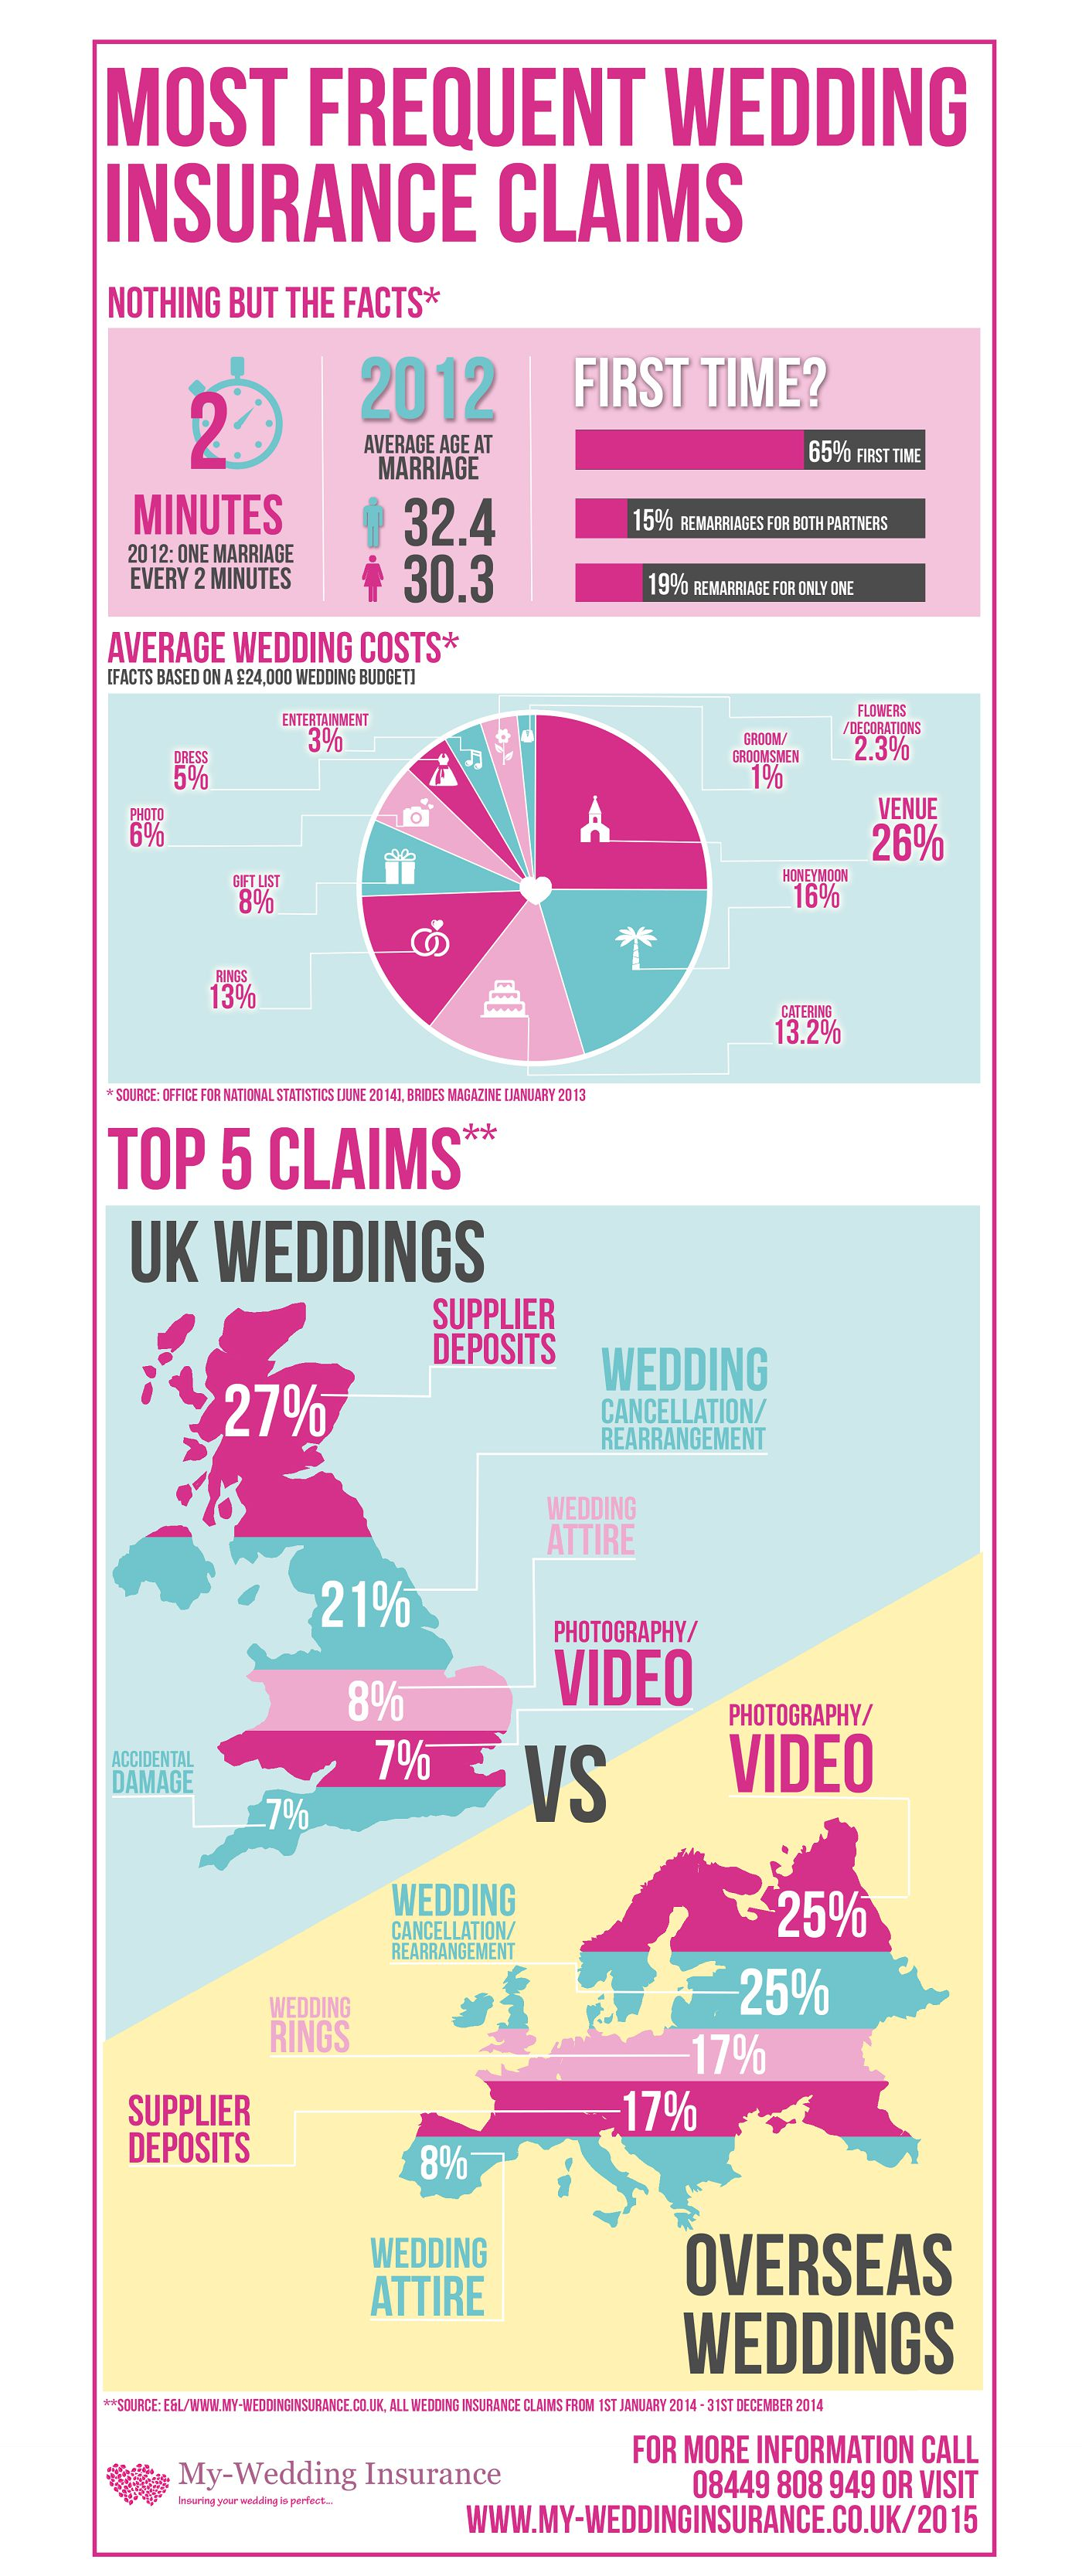 Top 5 reasons for wedding insurance claims - The National Wedding Show